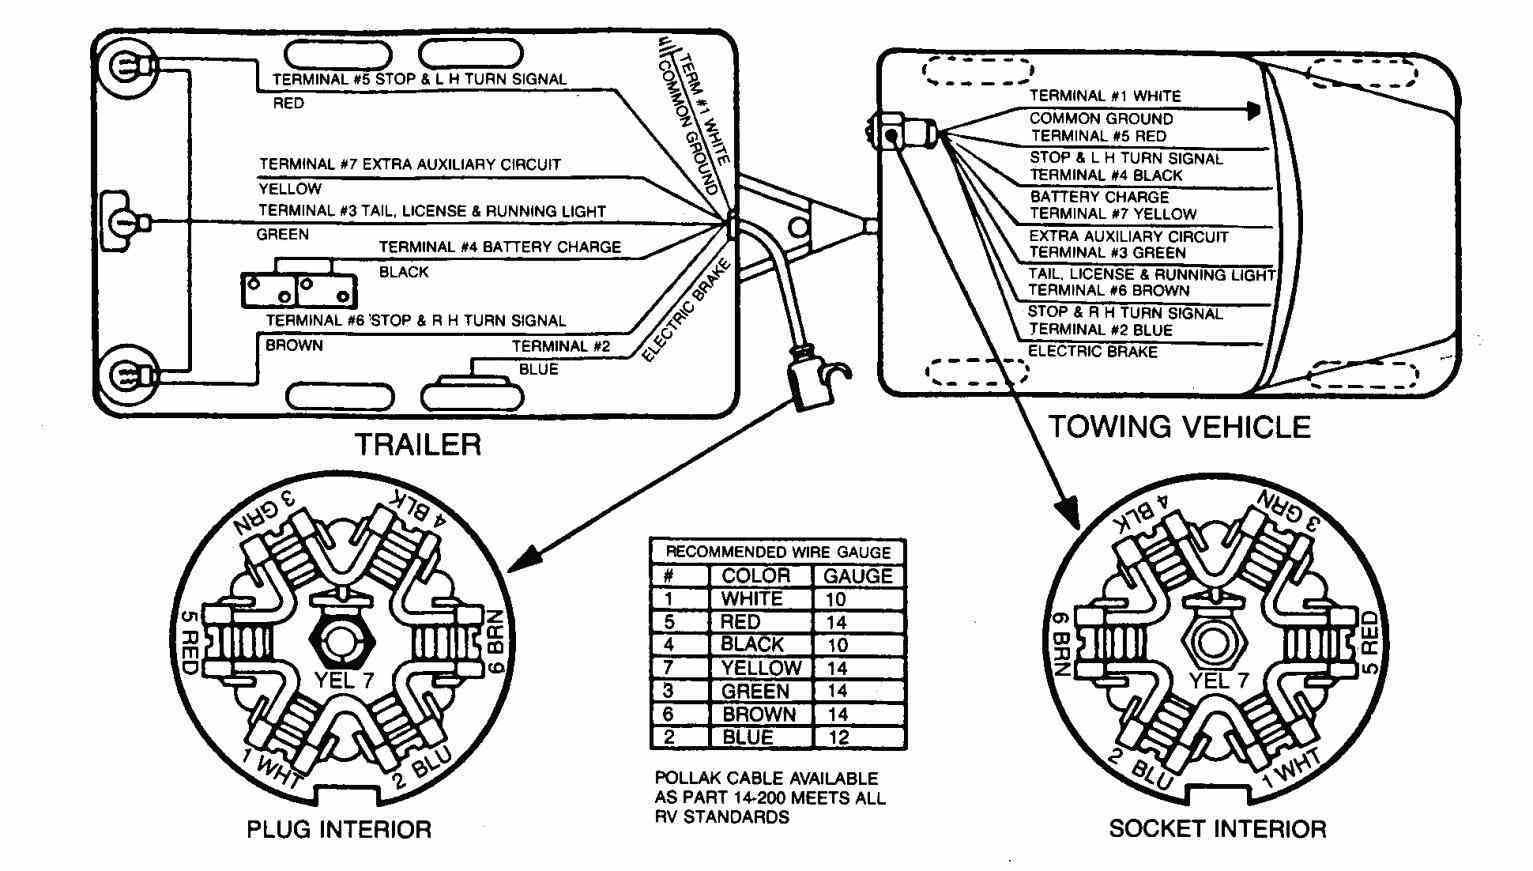 Wiring Schematic 7 Way Rv Plug - Wiring Diagram